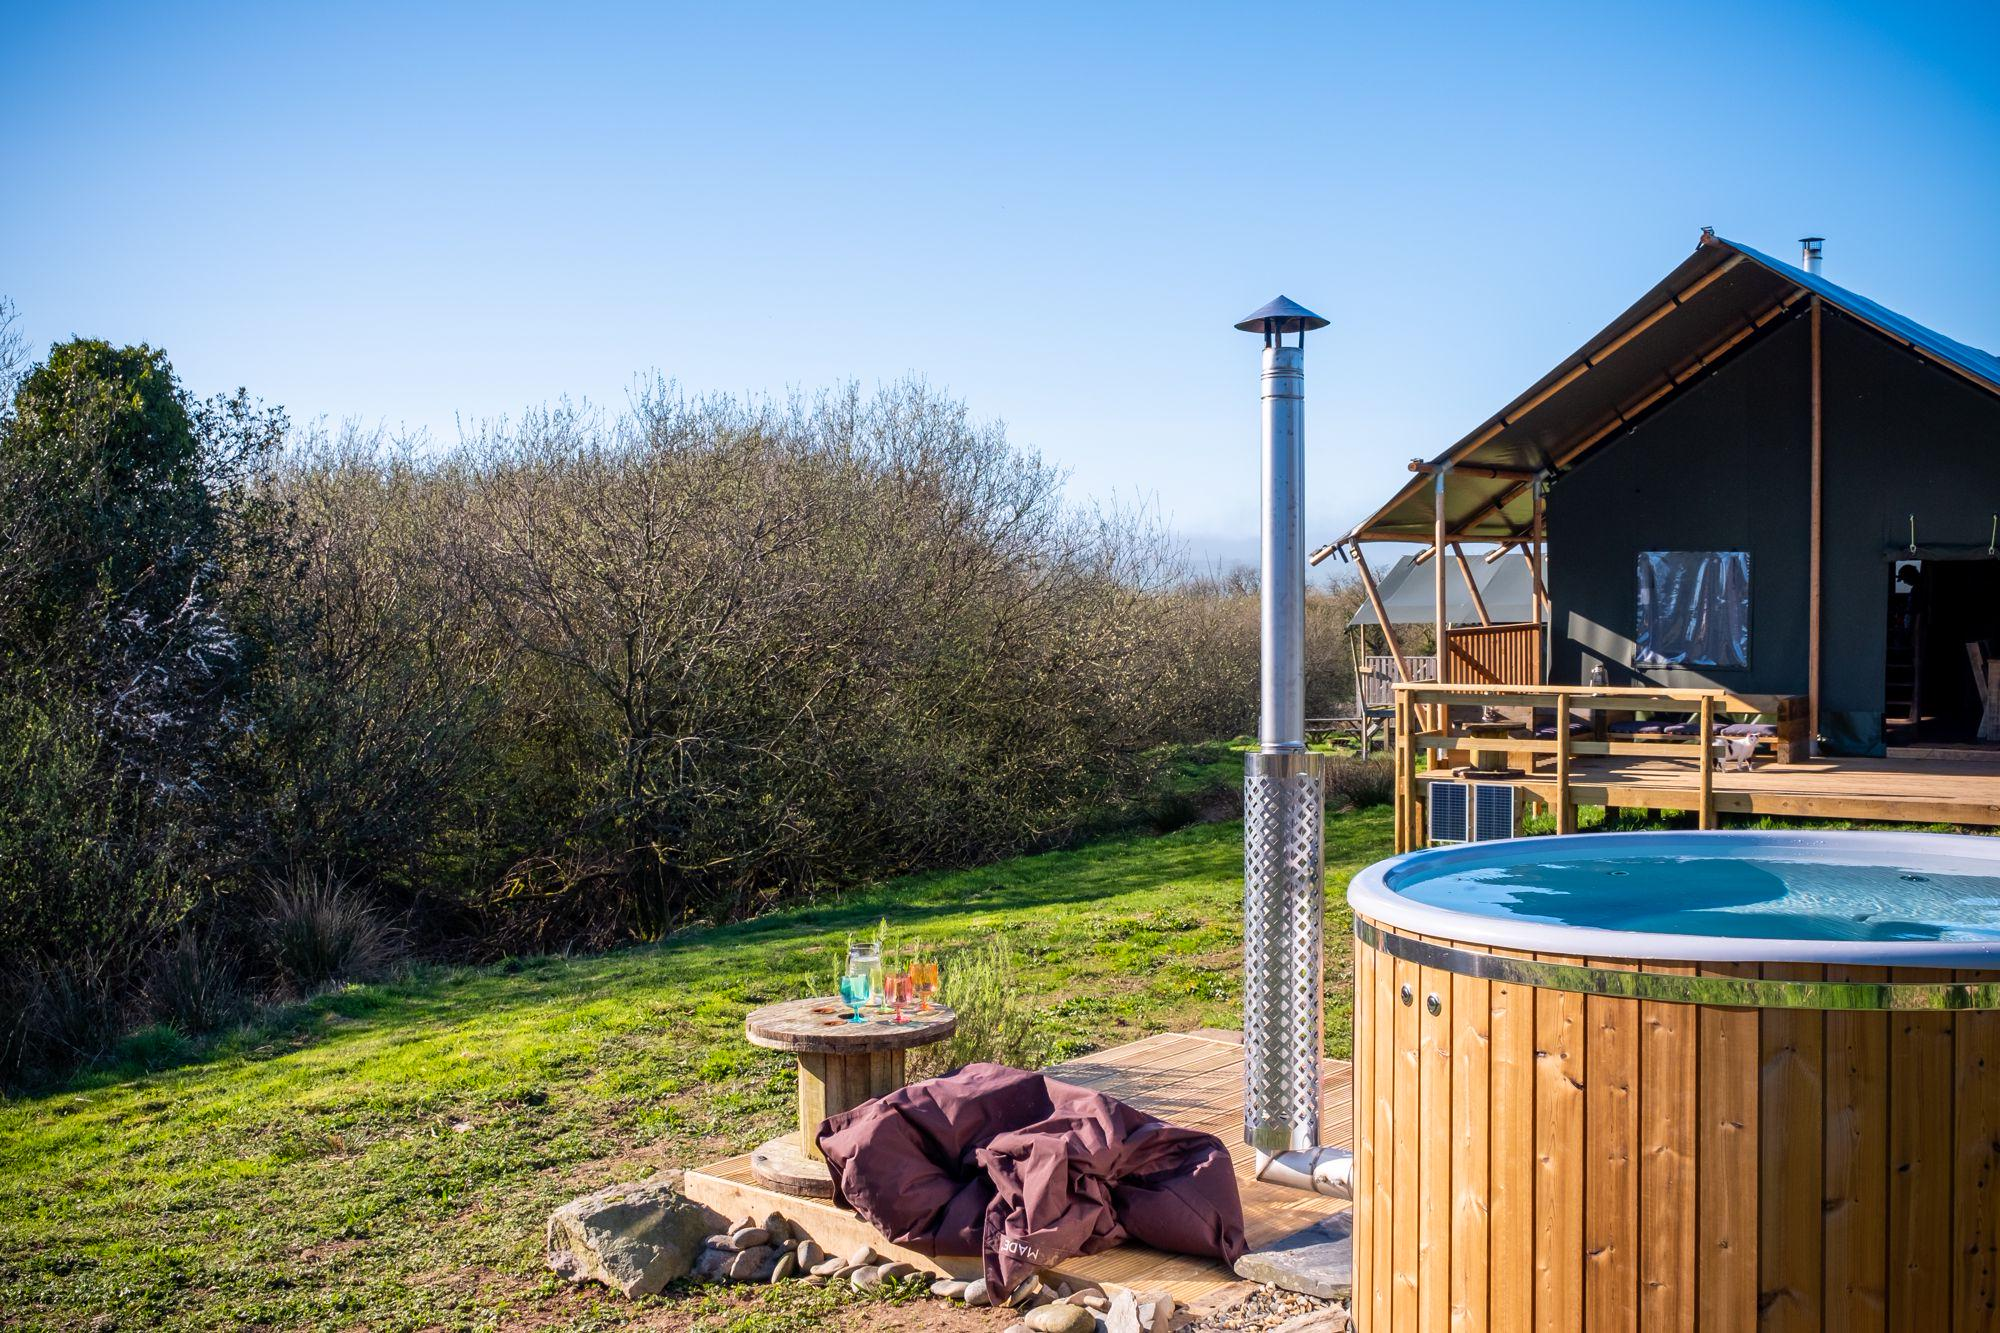 Hot Tub Glamping in Ceredigion | Glampsites with jacuzzis in Ceredigion